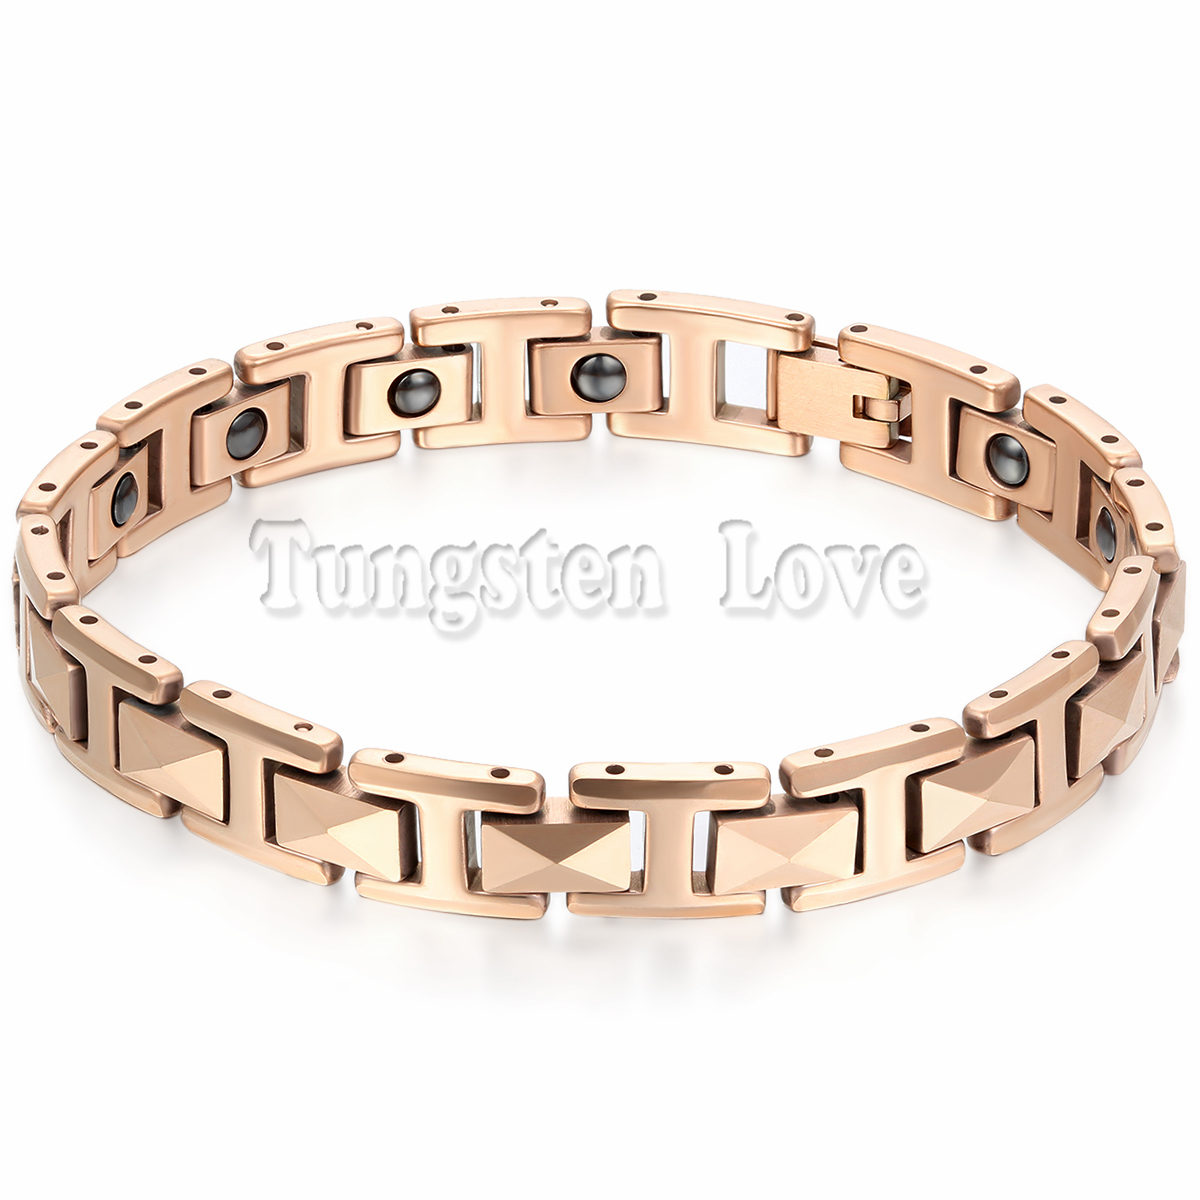 "7.6"" Cool Rose Gold Man Stereoscopic Tungsten Bracelet Health Balance Bracelet With Energy Magnetic Stone Inlay pulseras hombre(China (Mainland))"